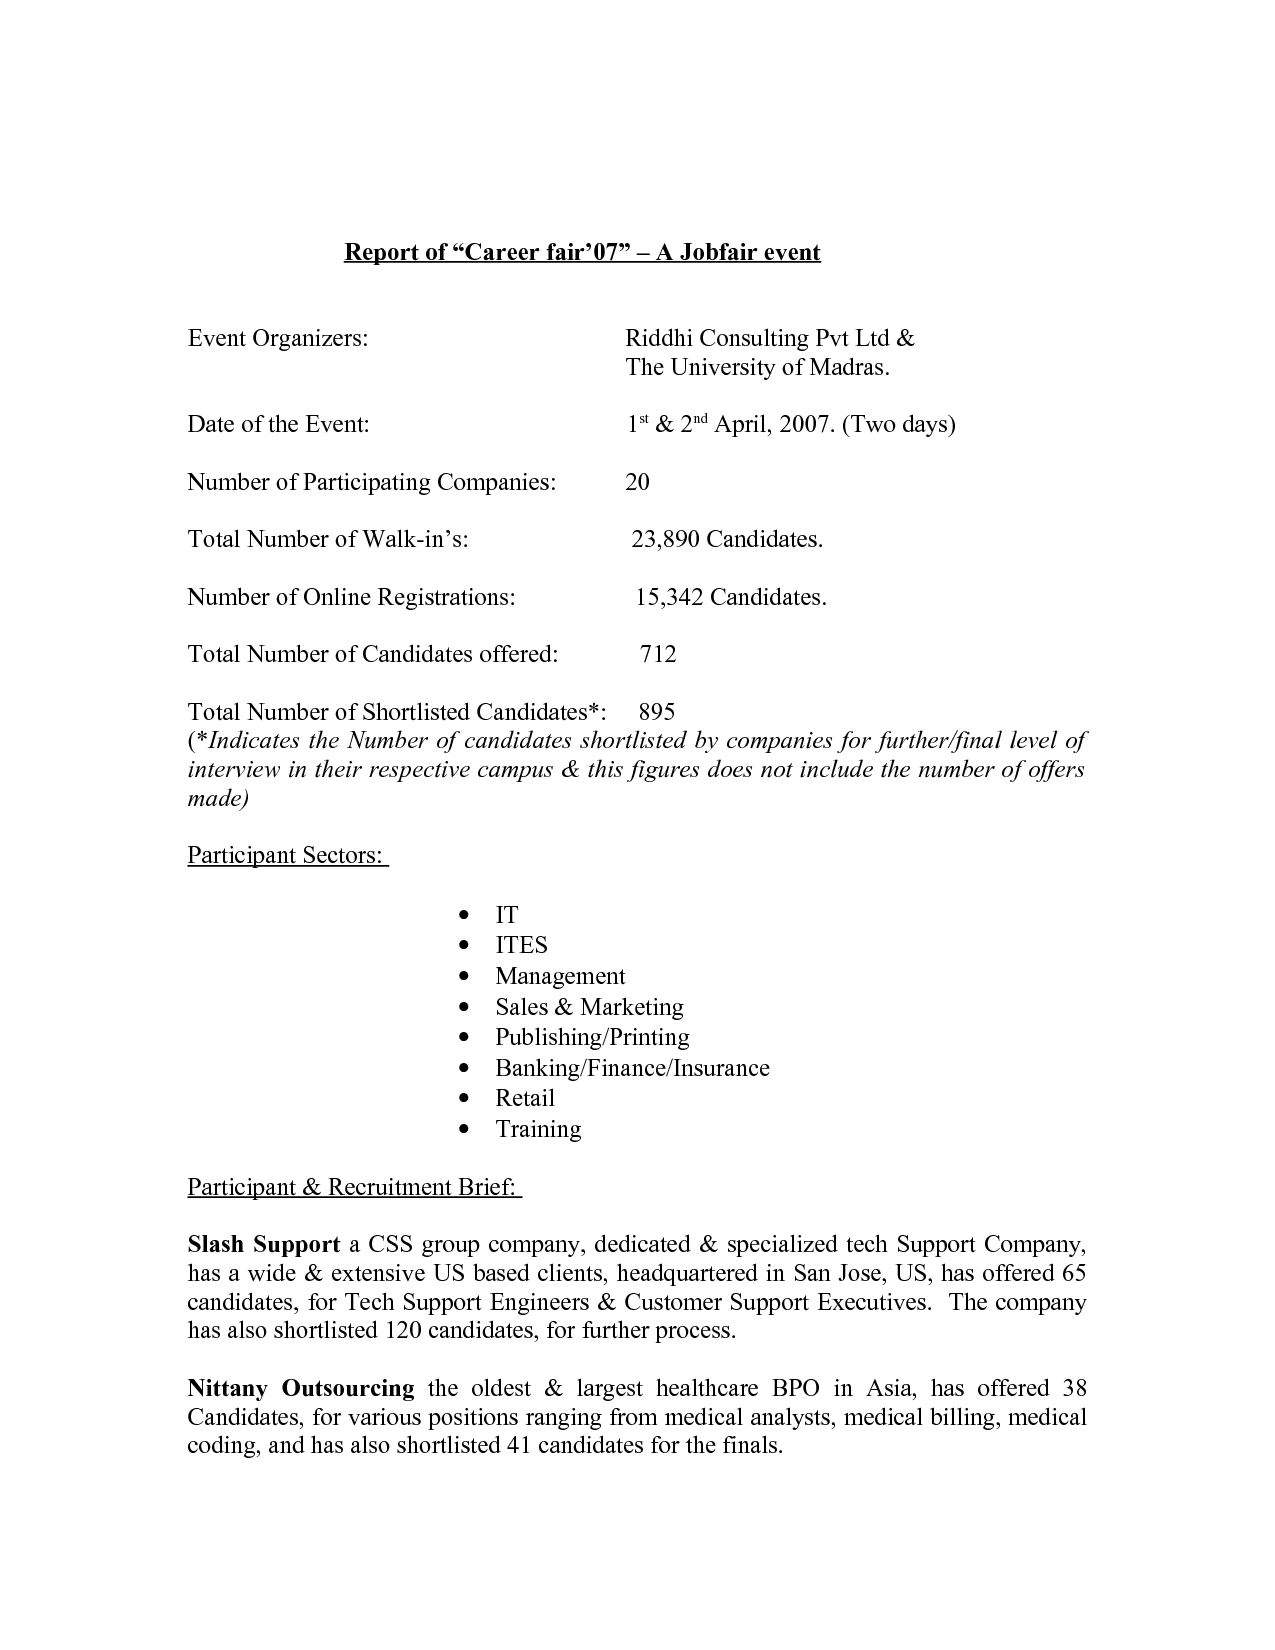 Resume format for freshers free download resume format for resume format for freshers free download resume format for freshers free download resume format for yelopaper Image collections